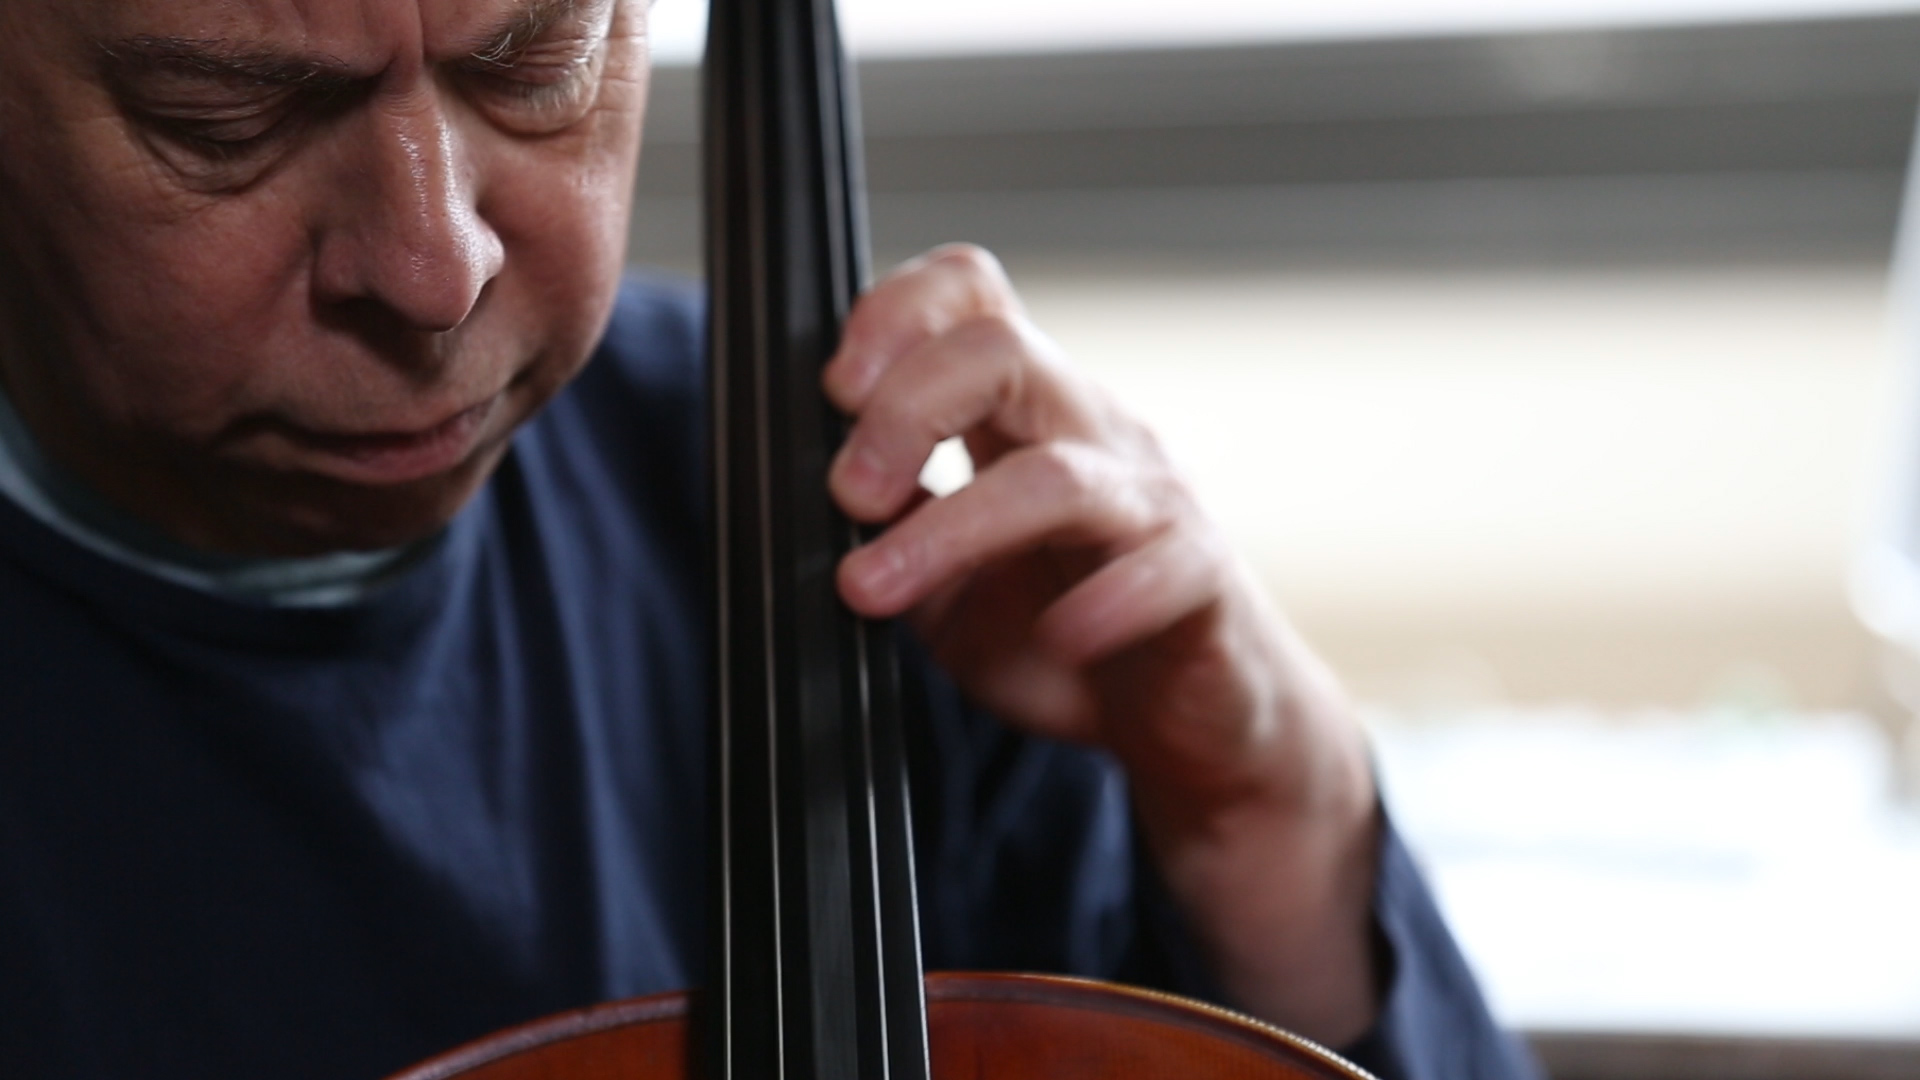 Orchestrating Hits - Classically trained cellist Larry Gold has spent a lifetime orchestrating pop classics. Today he's helping bring out the soul in R&B and Hip-hop.Season 1, Episode 10